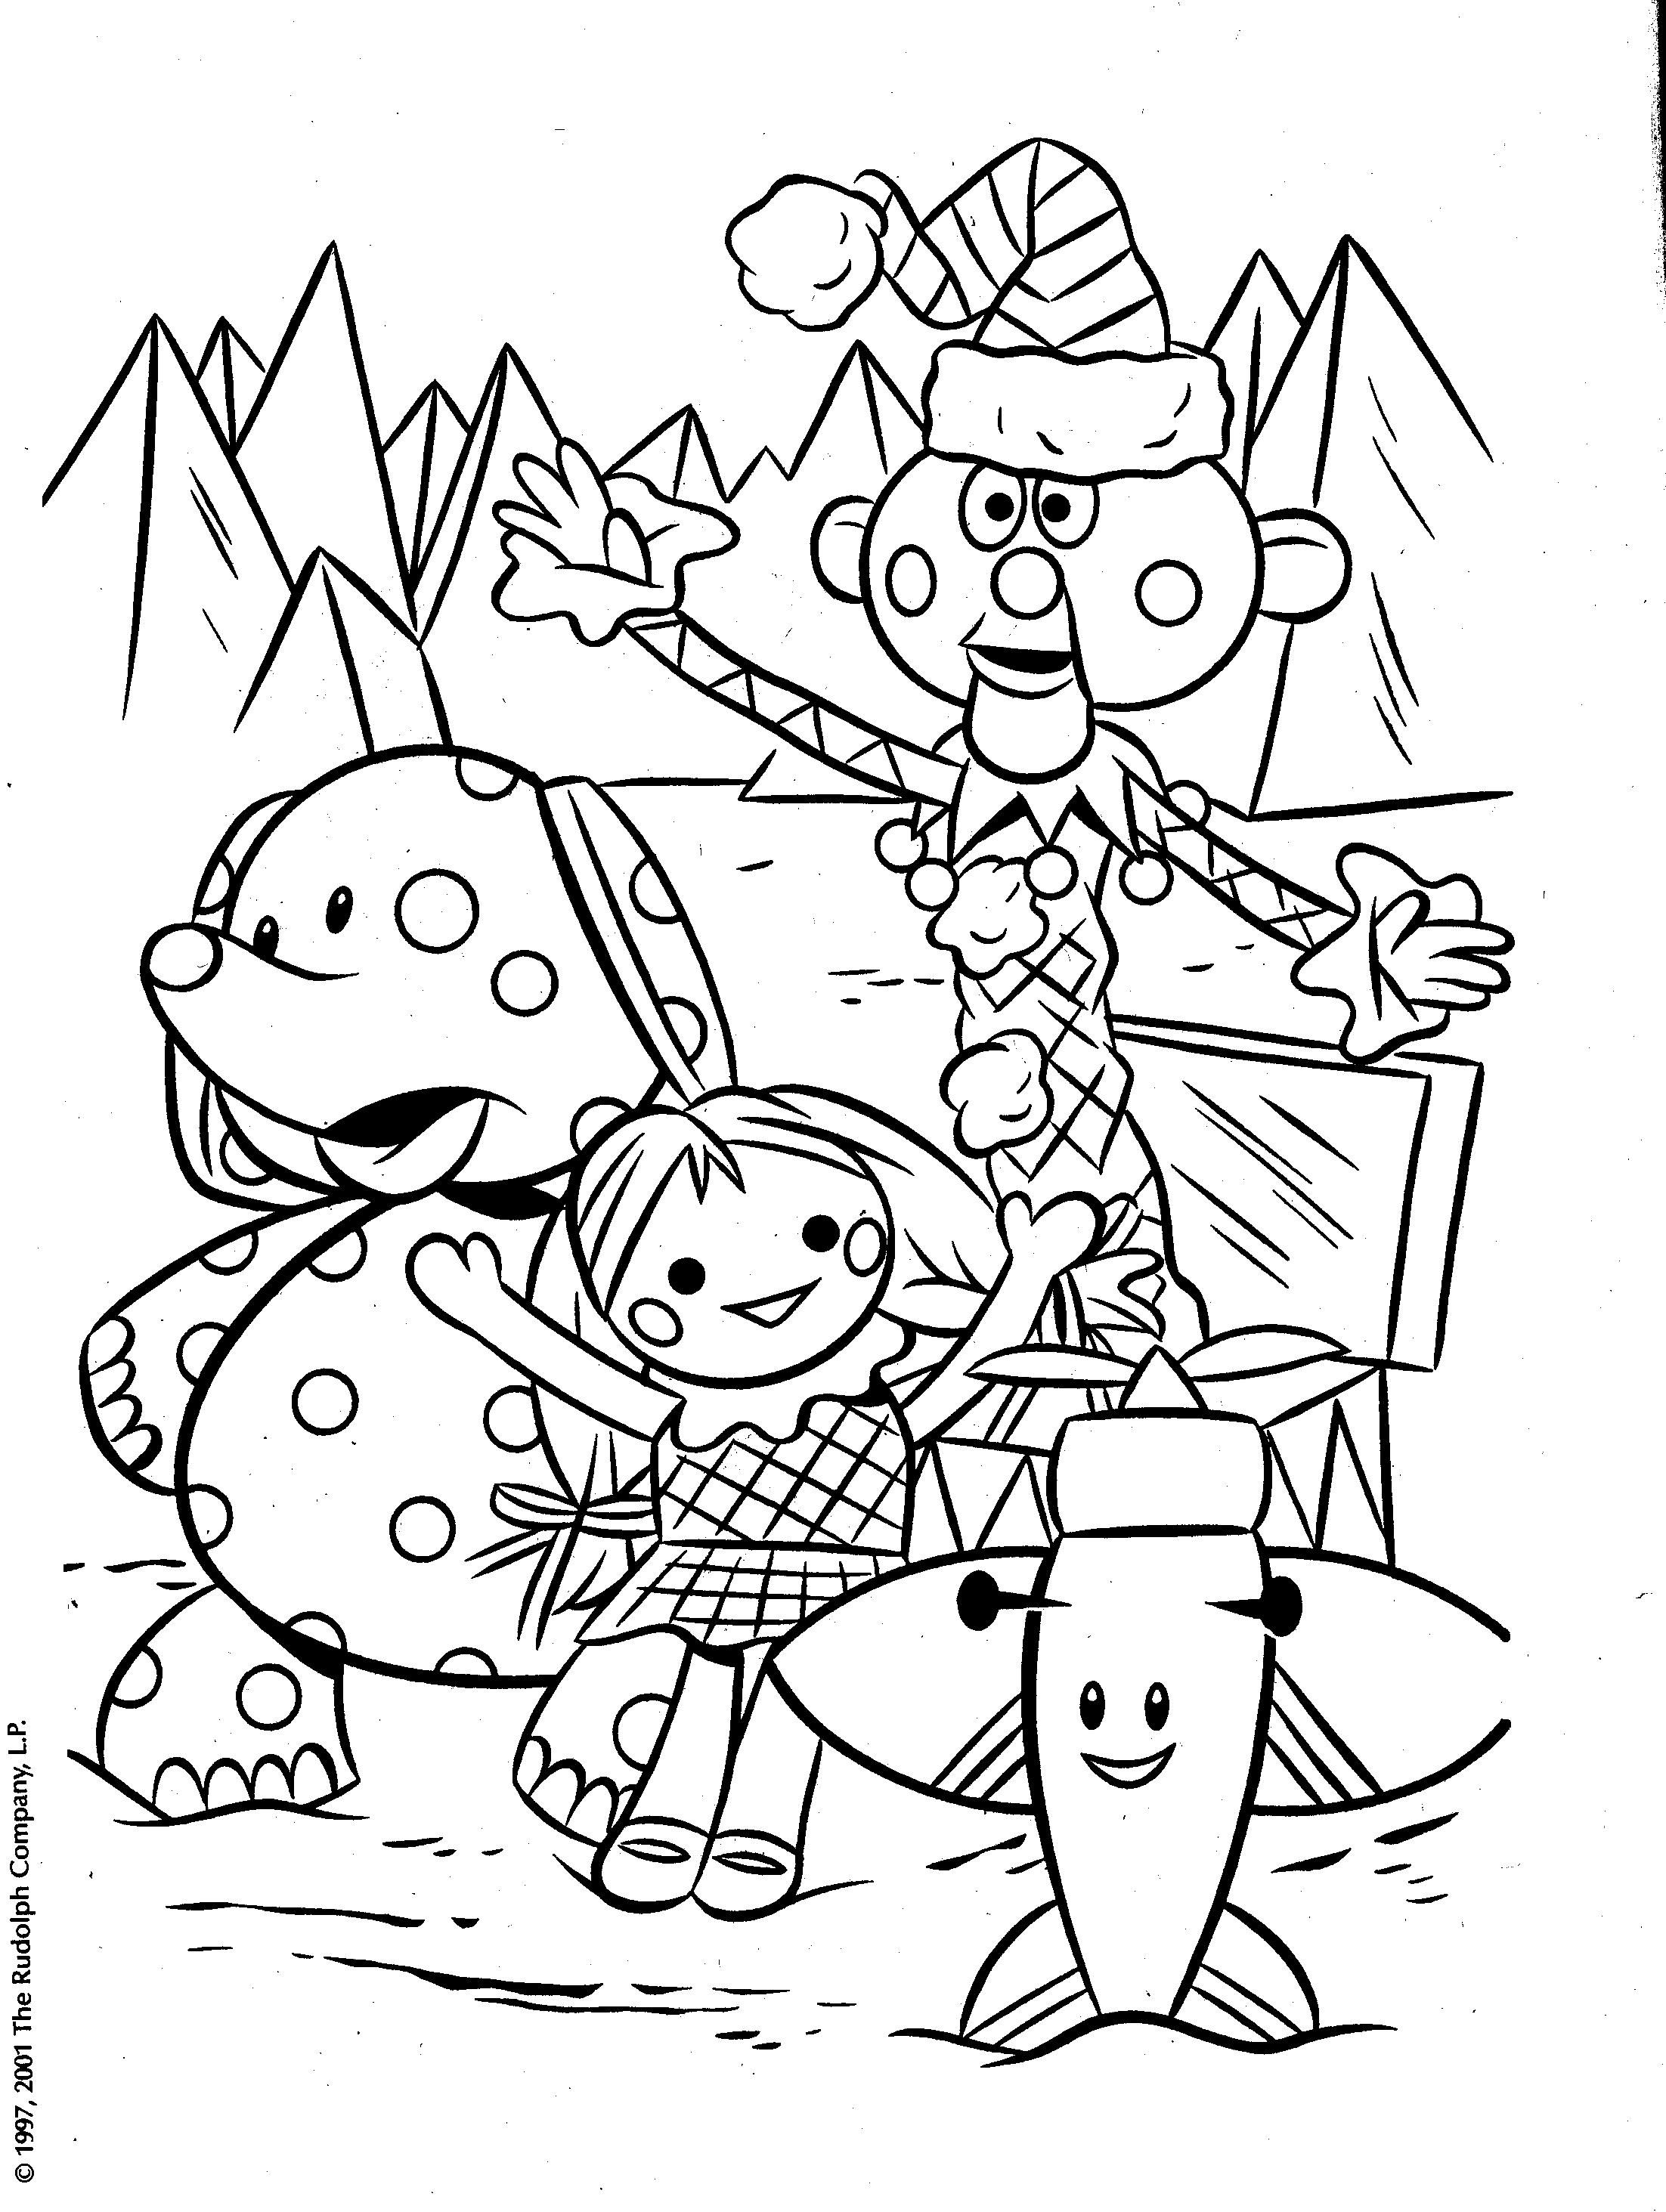 toys coloring pages Rudolph Misfit Toys Coloring Pages | grammy picks | Rudolph  toys coloring pages